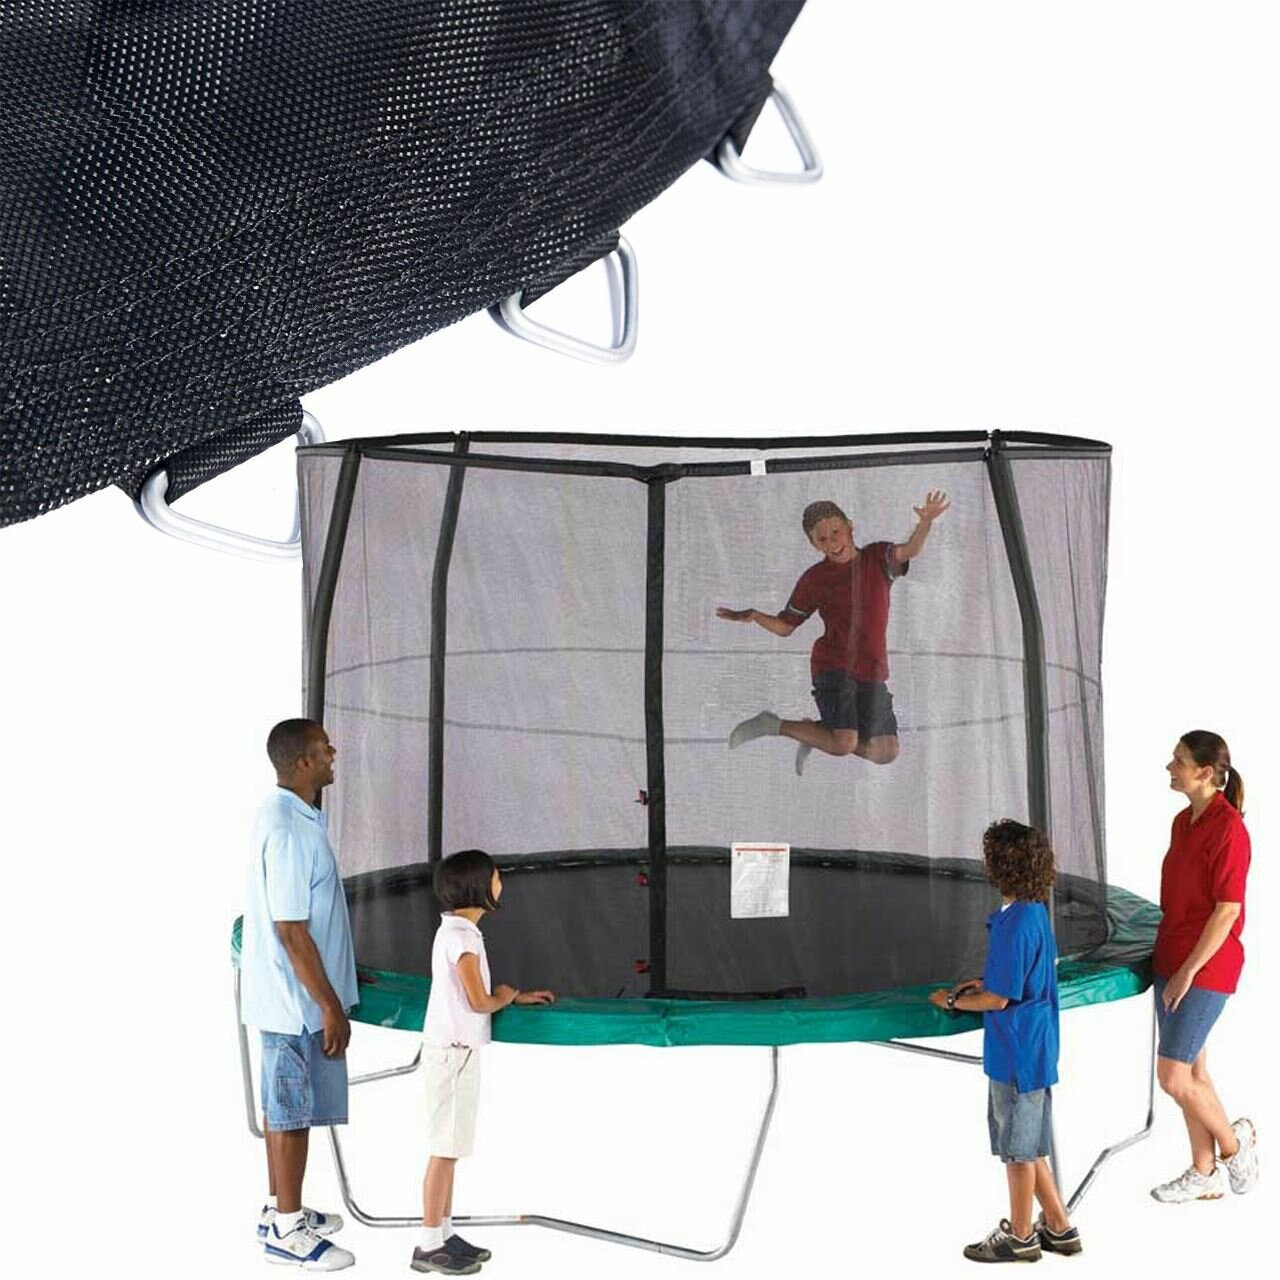 Orbounder 14 Trampoline And Enclosure Combo: SKYBOUND 14' Orbounder Net And Mat Combo